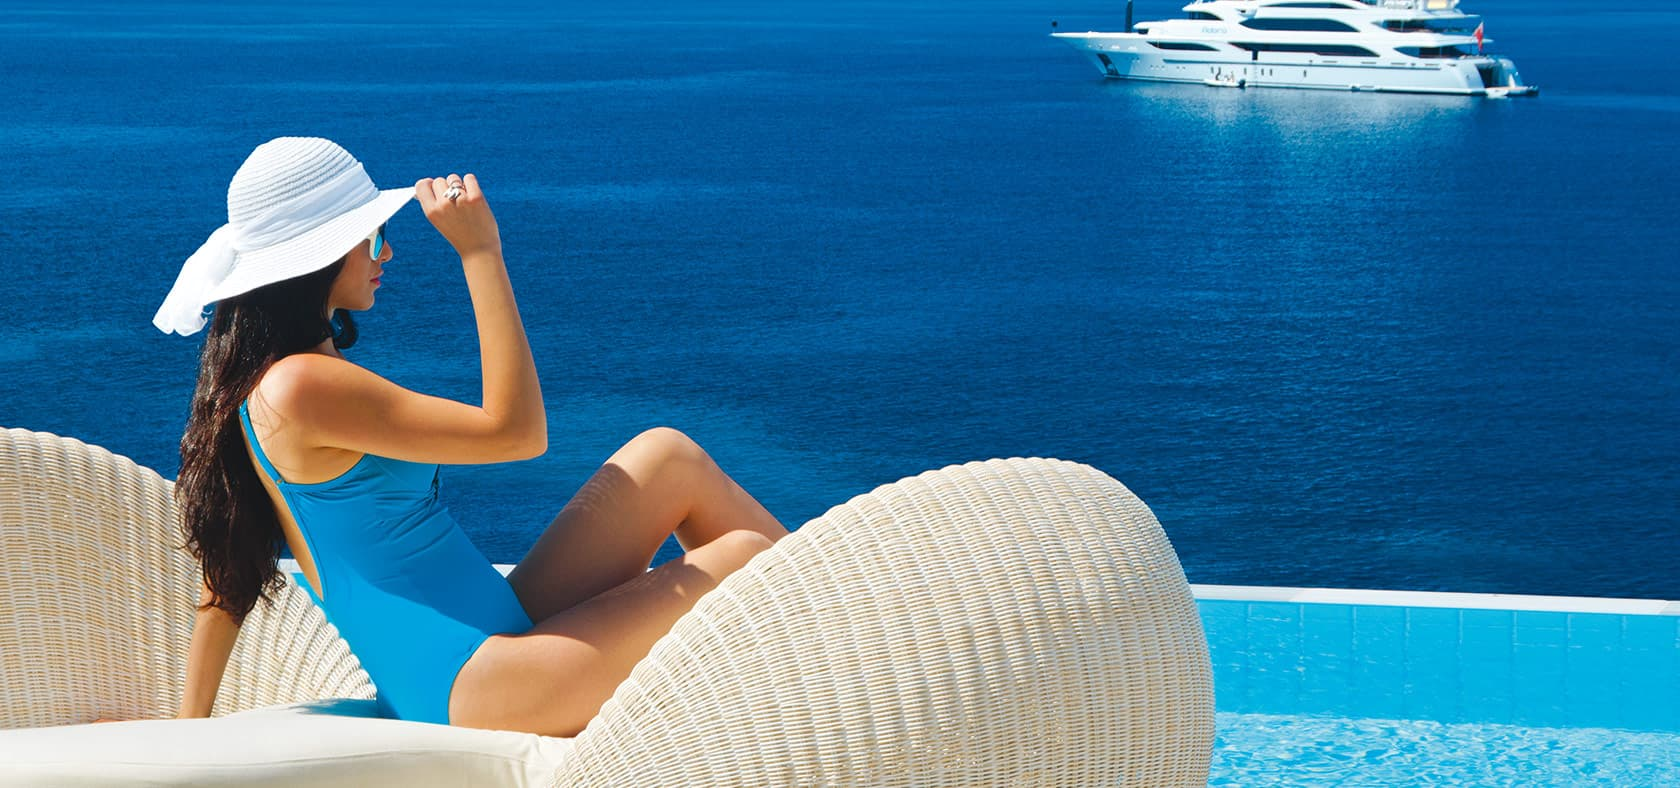 Lady in swimsuit and hat sitting by the edge of the pool overlooking the sea.